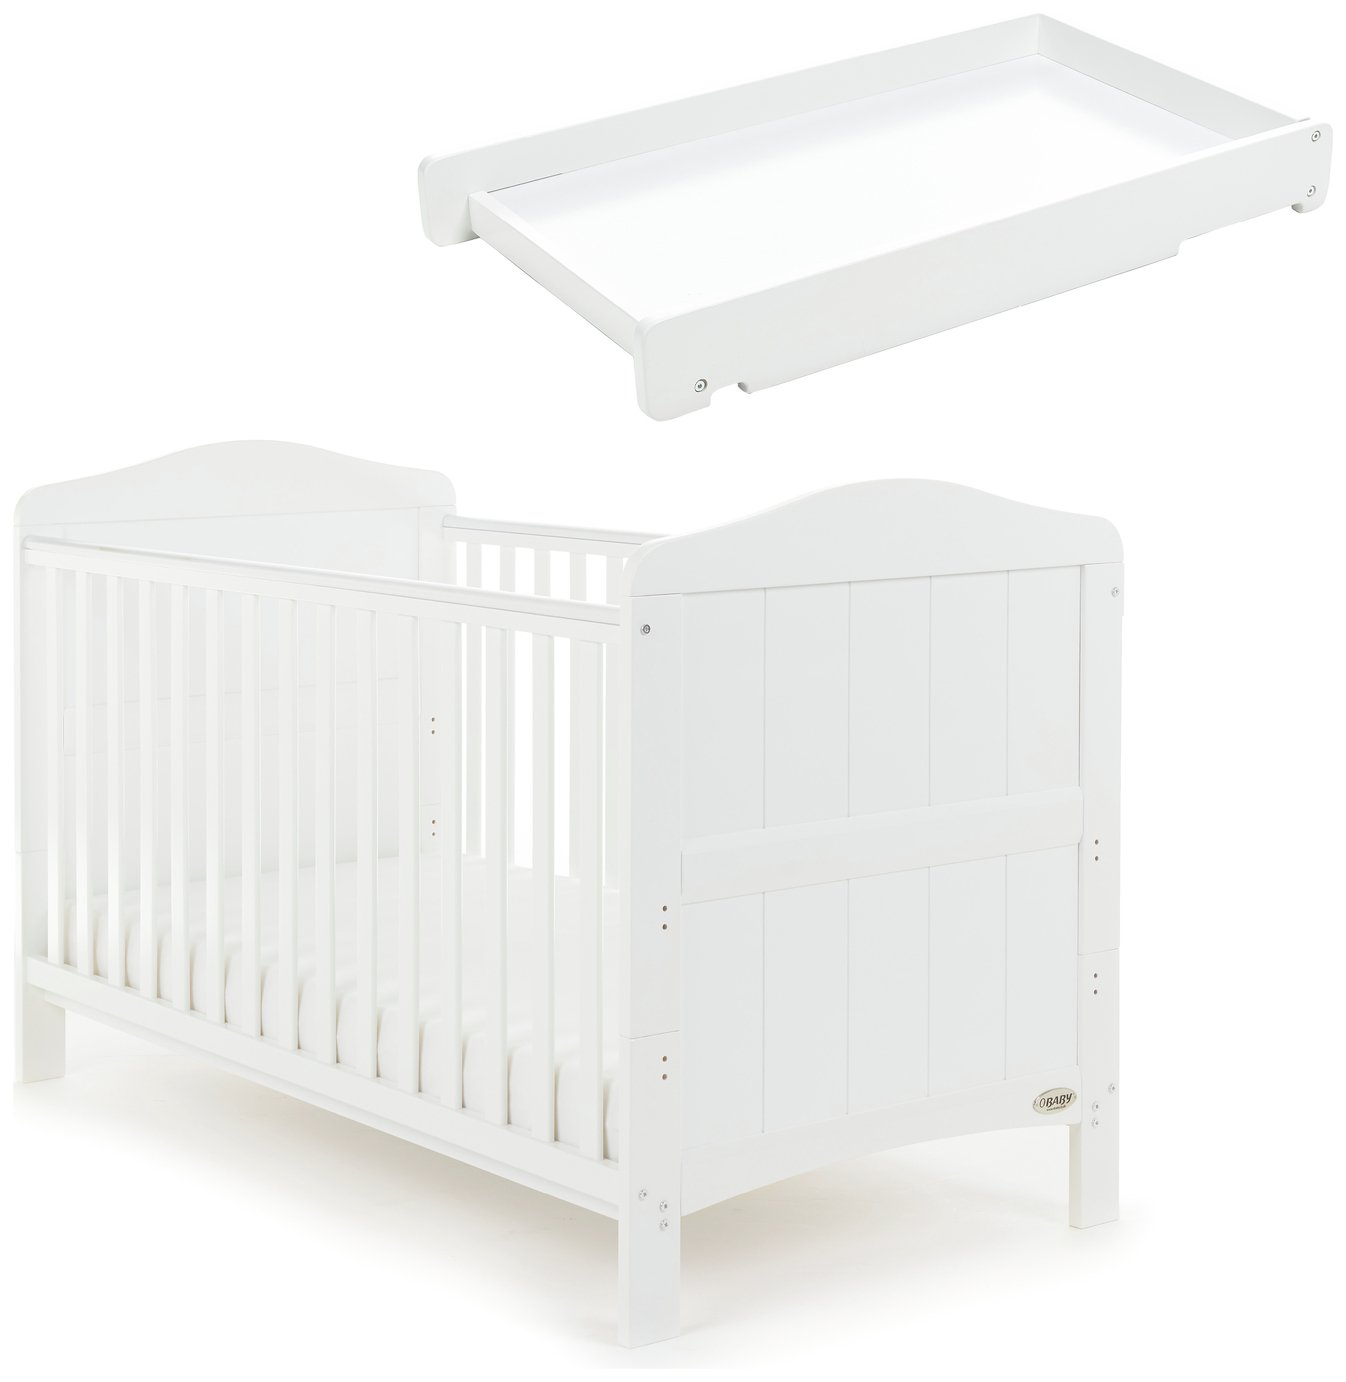 Obaby Whitby Cot Bed and Cot Top Changer - White